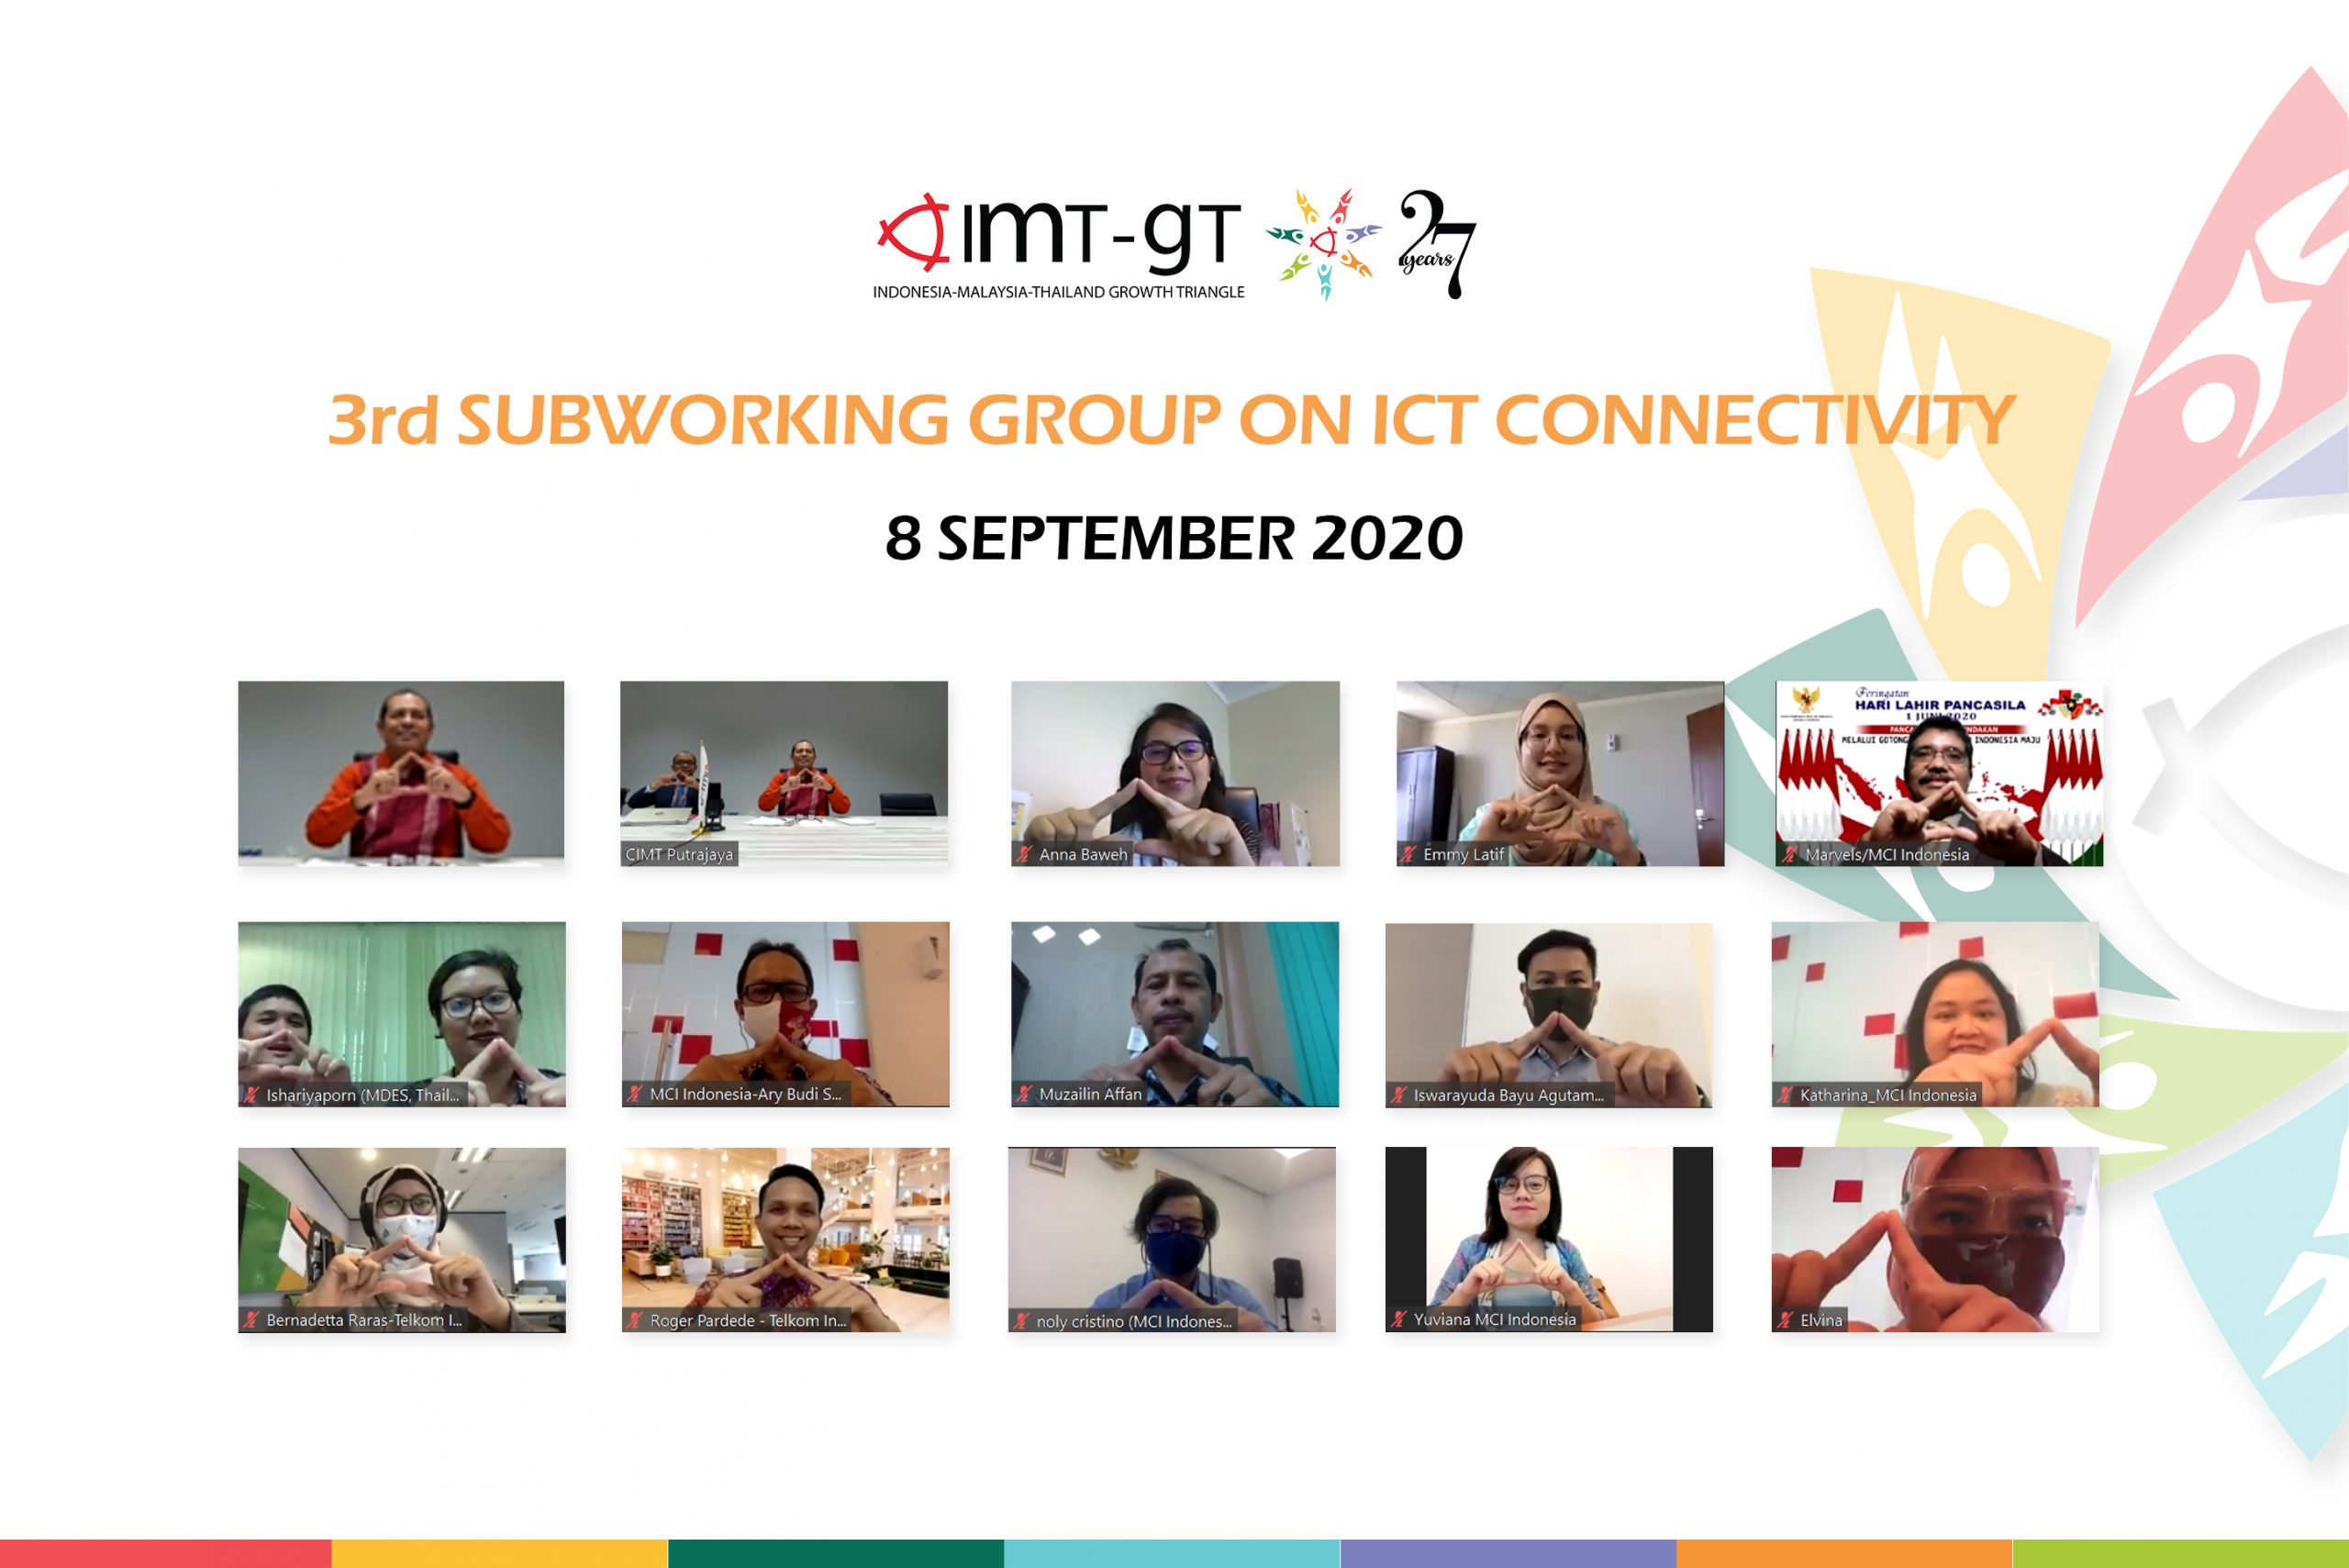 3RD IMT-GT SUBWORKING GROUP ON ICT CONNECTIVITY